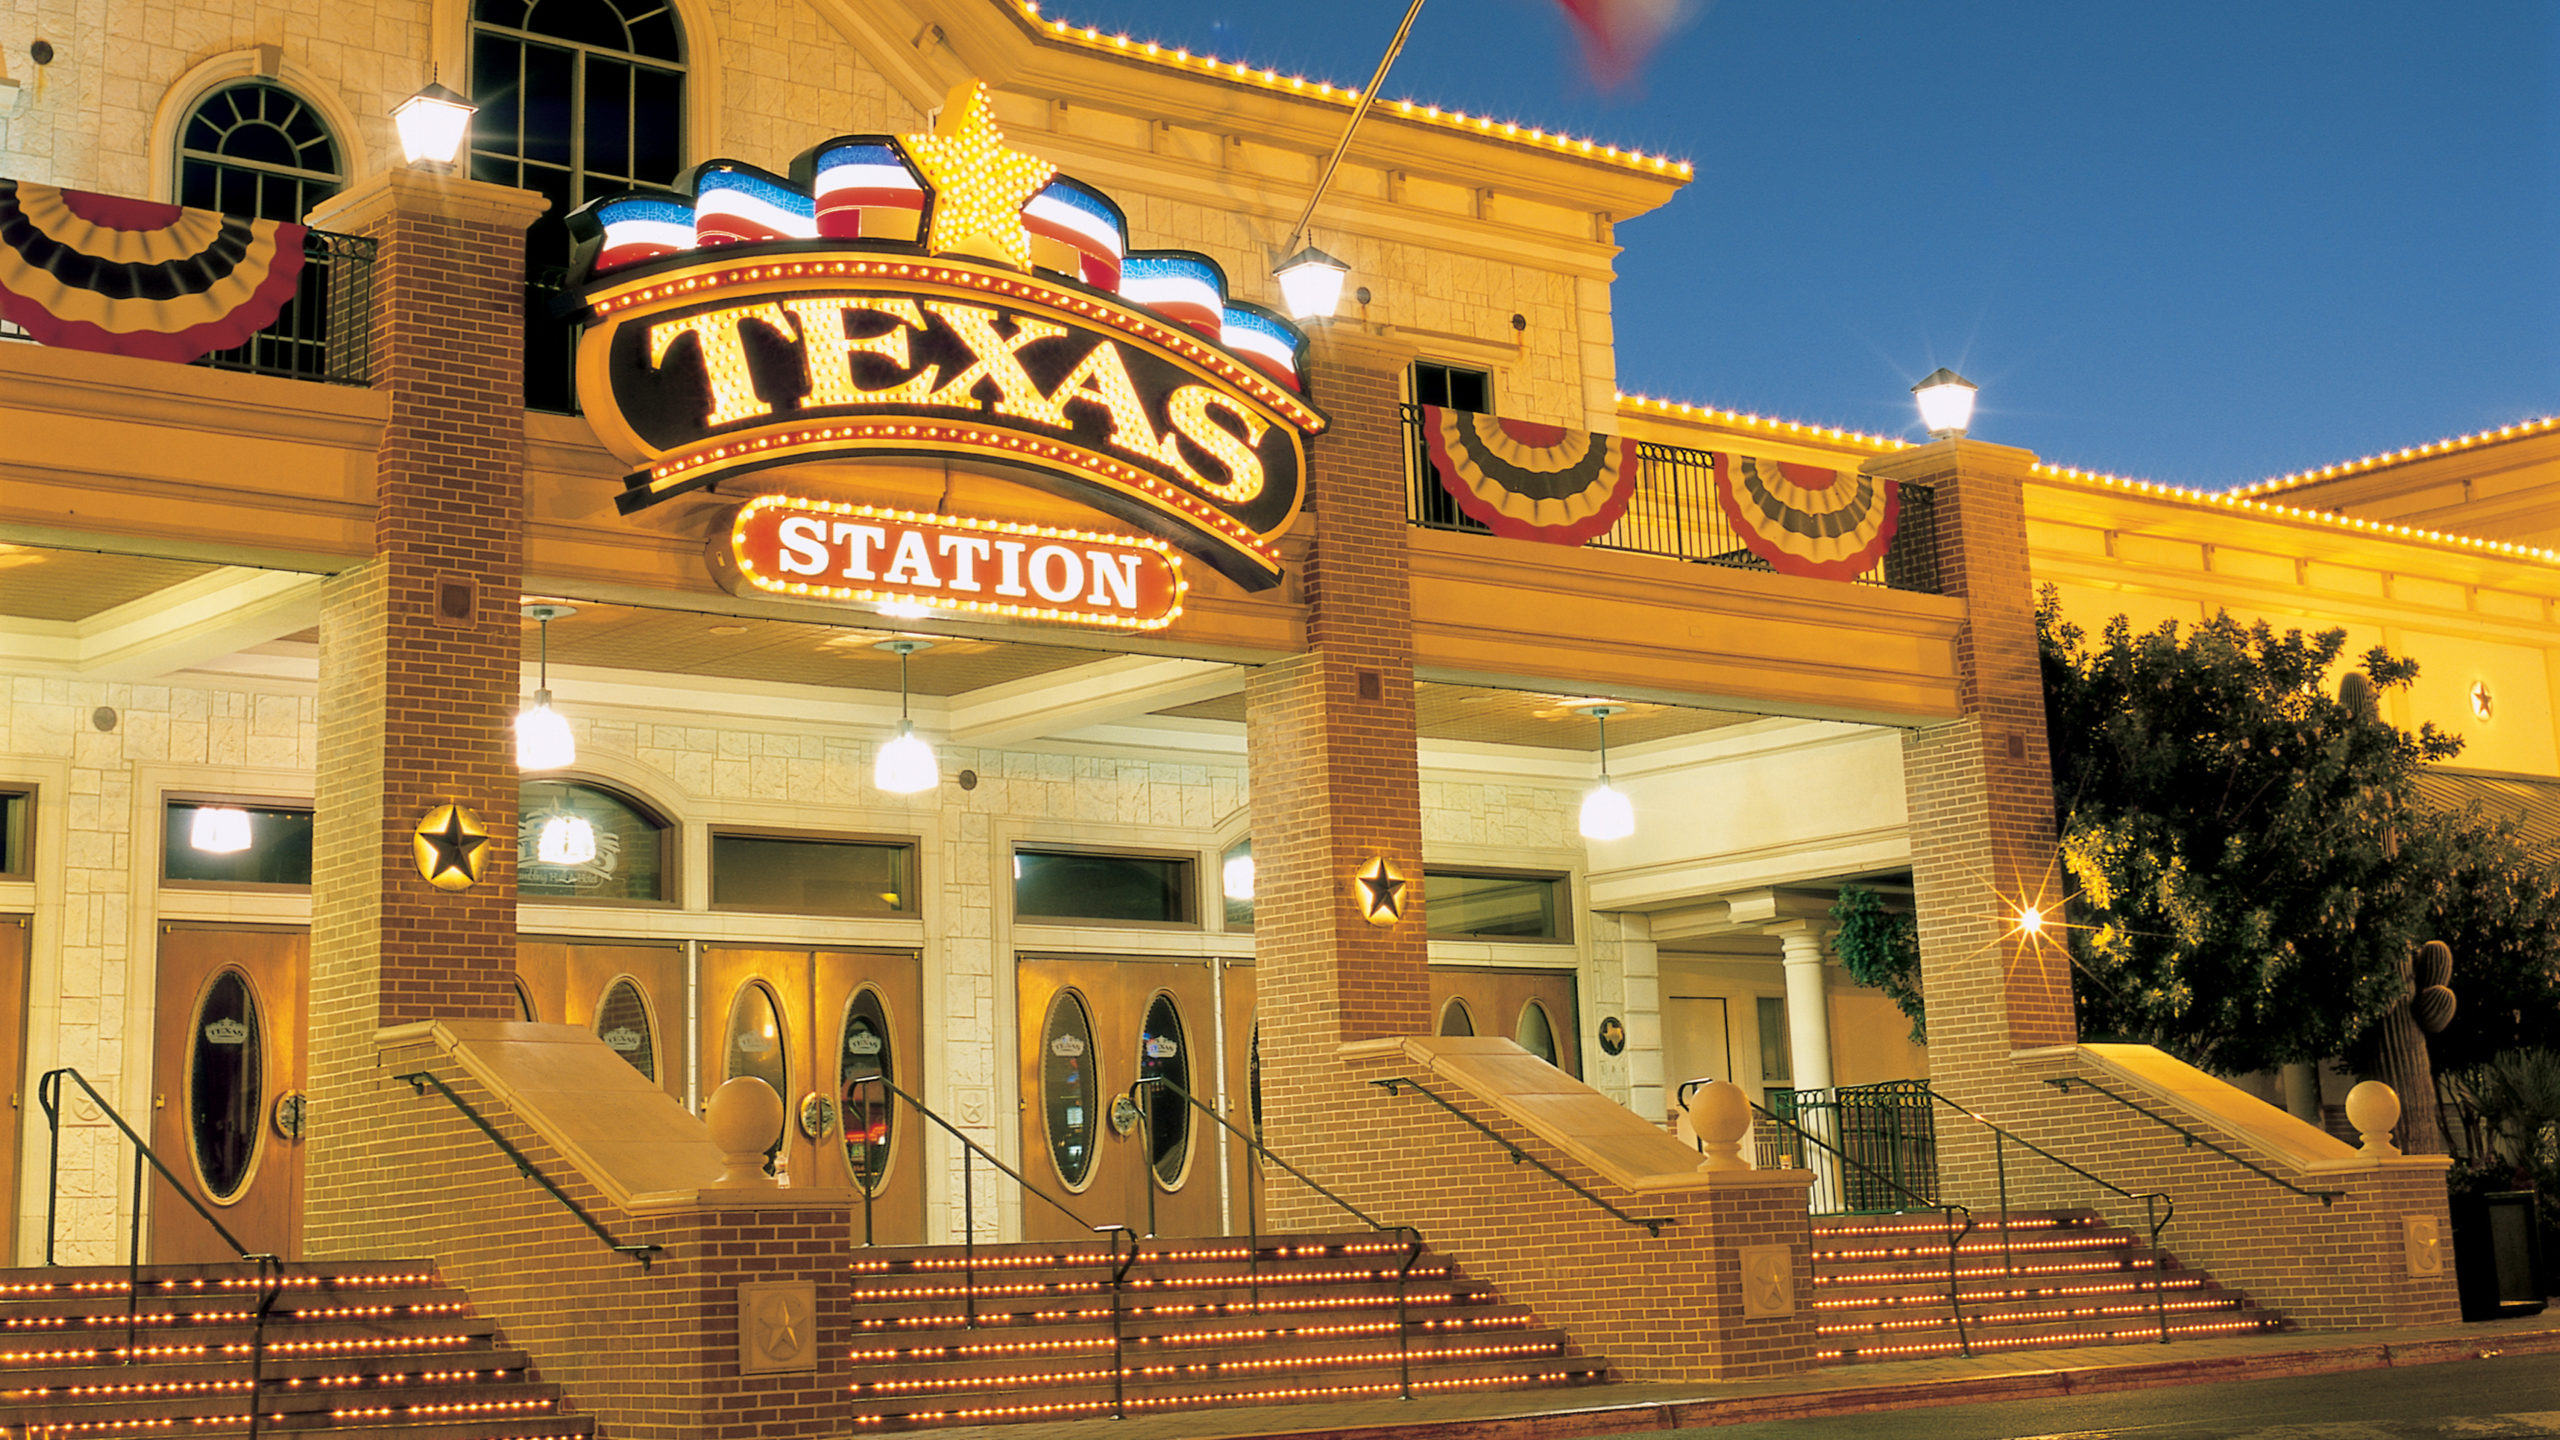 Exterior view of Texas Station